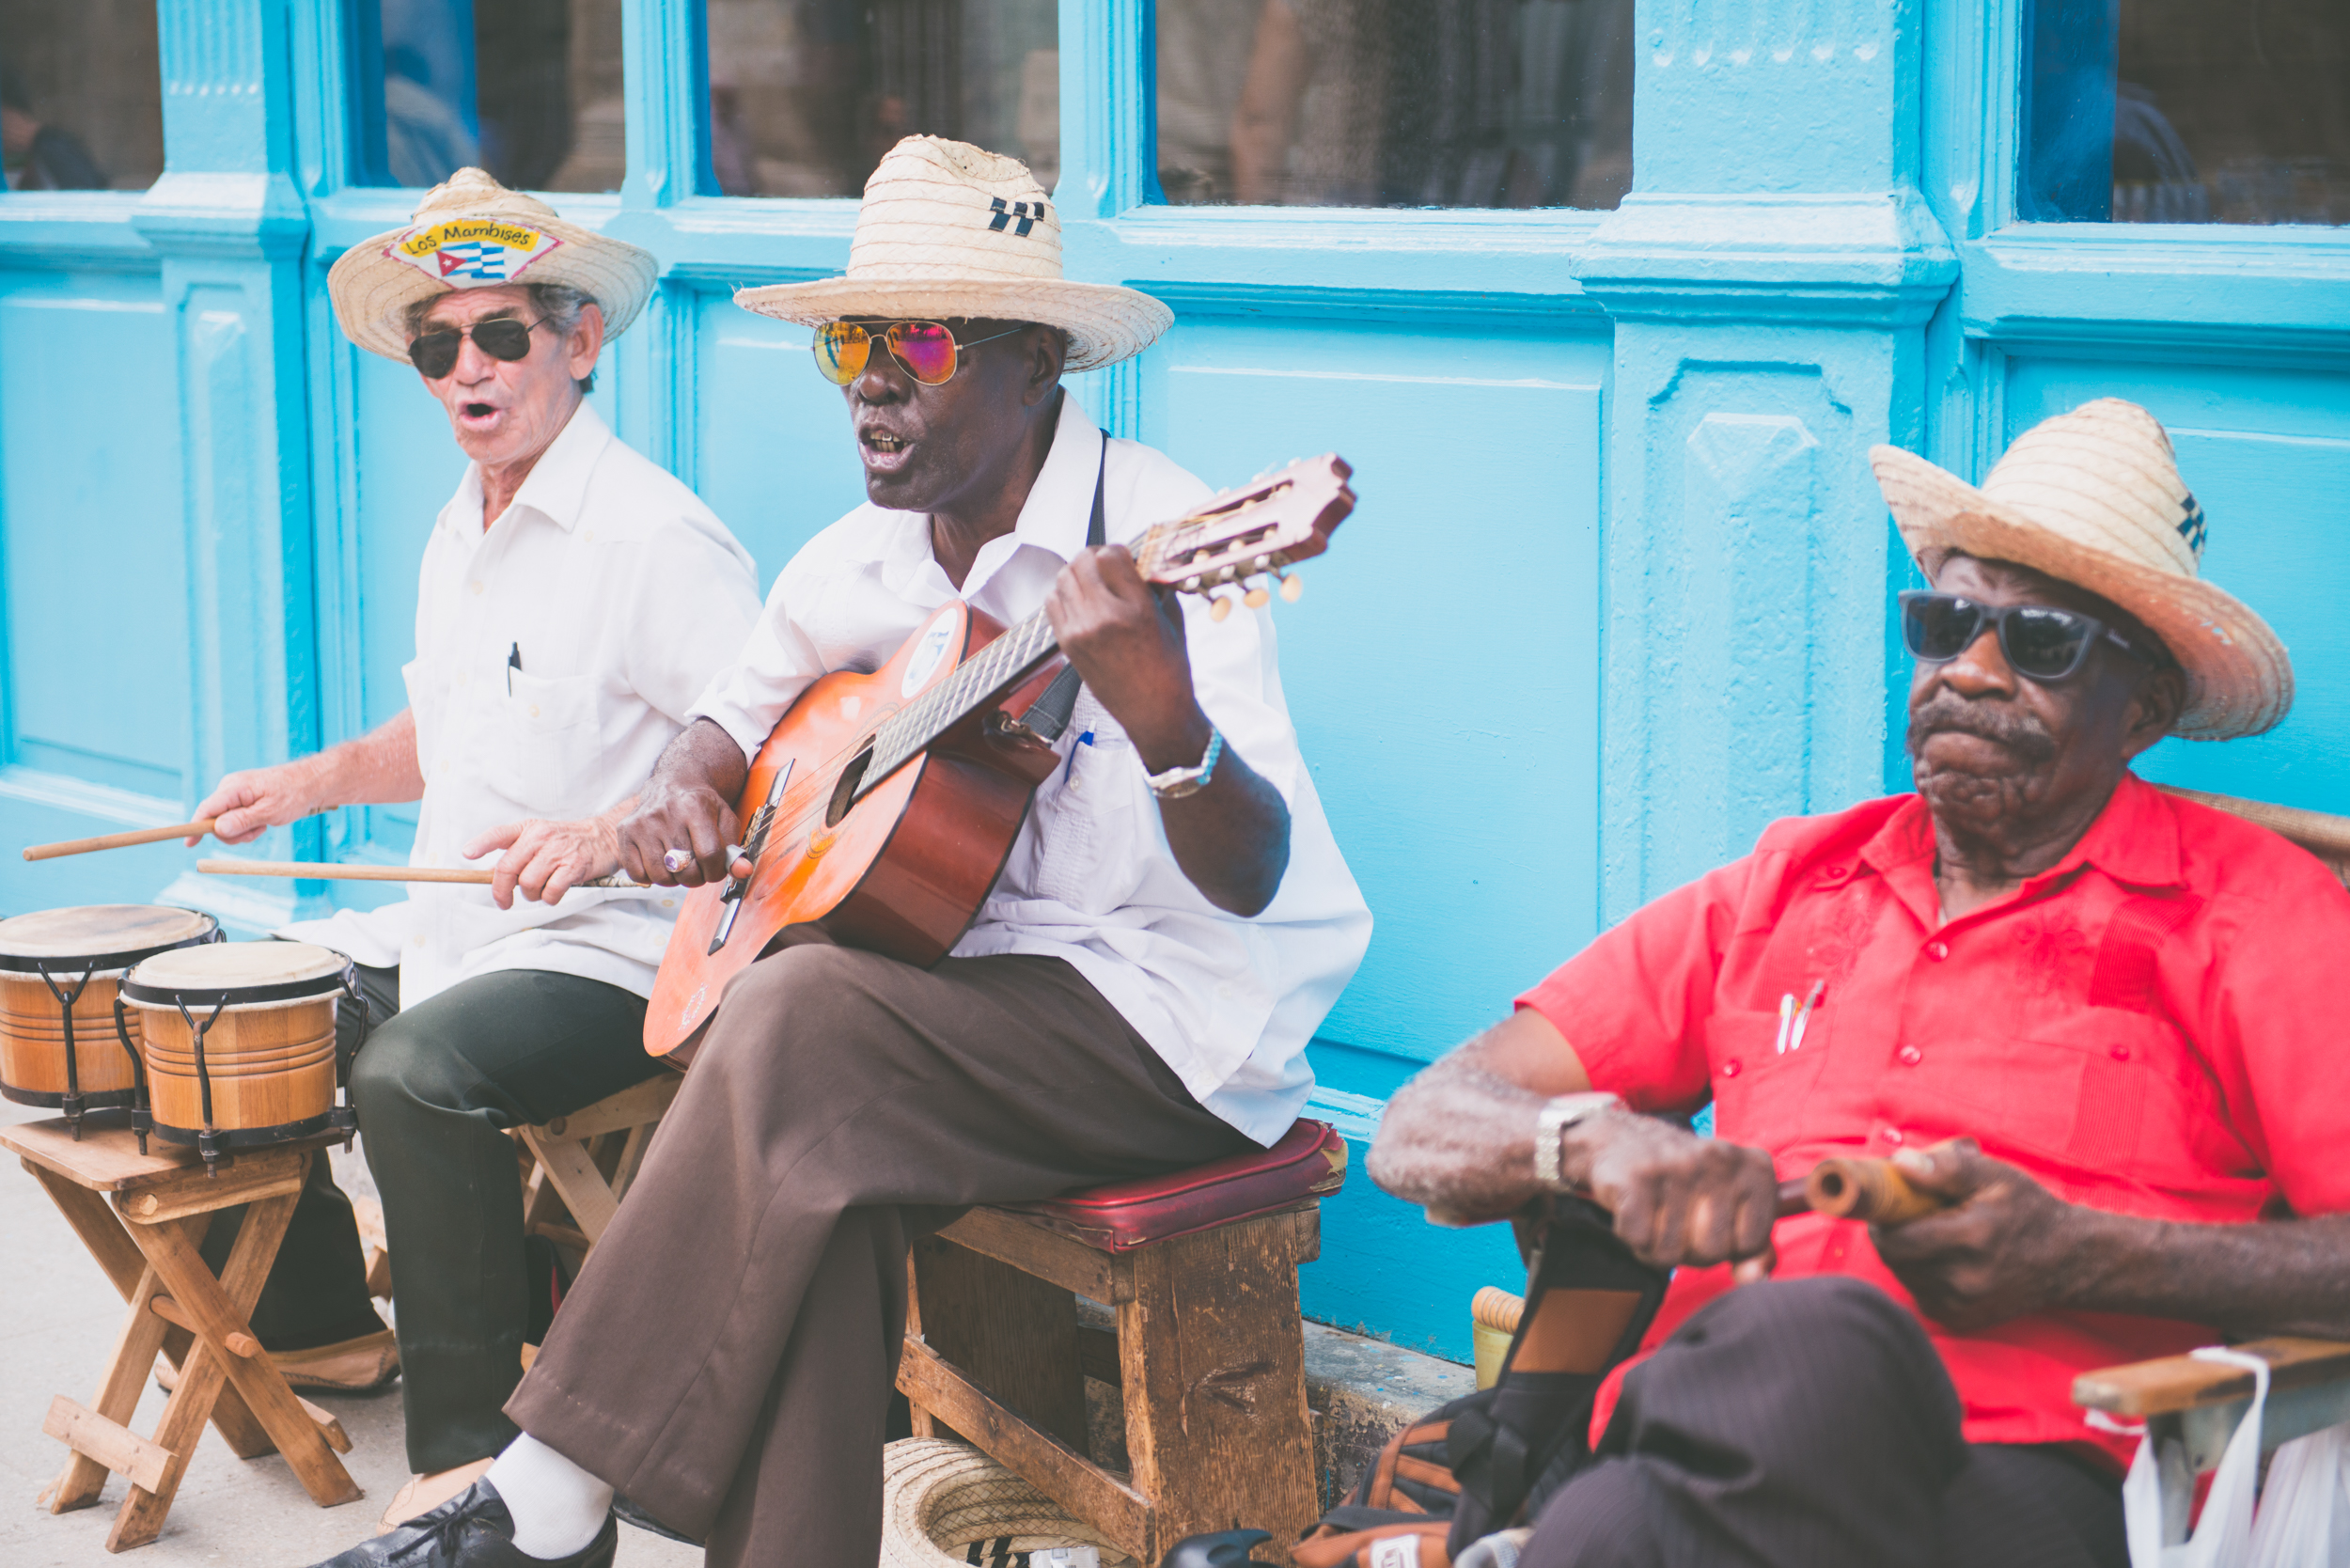 Musicians in Cuba - Travel - photo credit Nicola Bailey.jpg